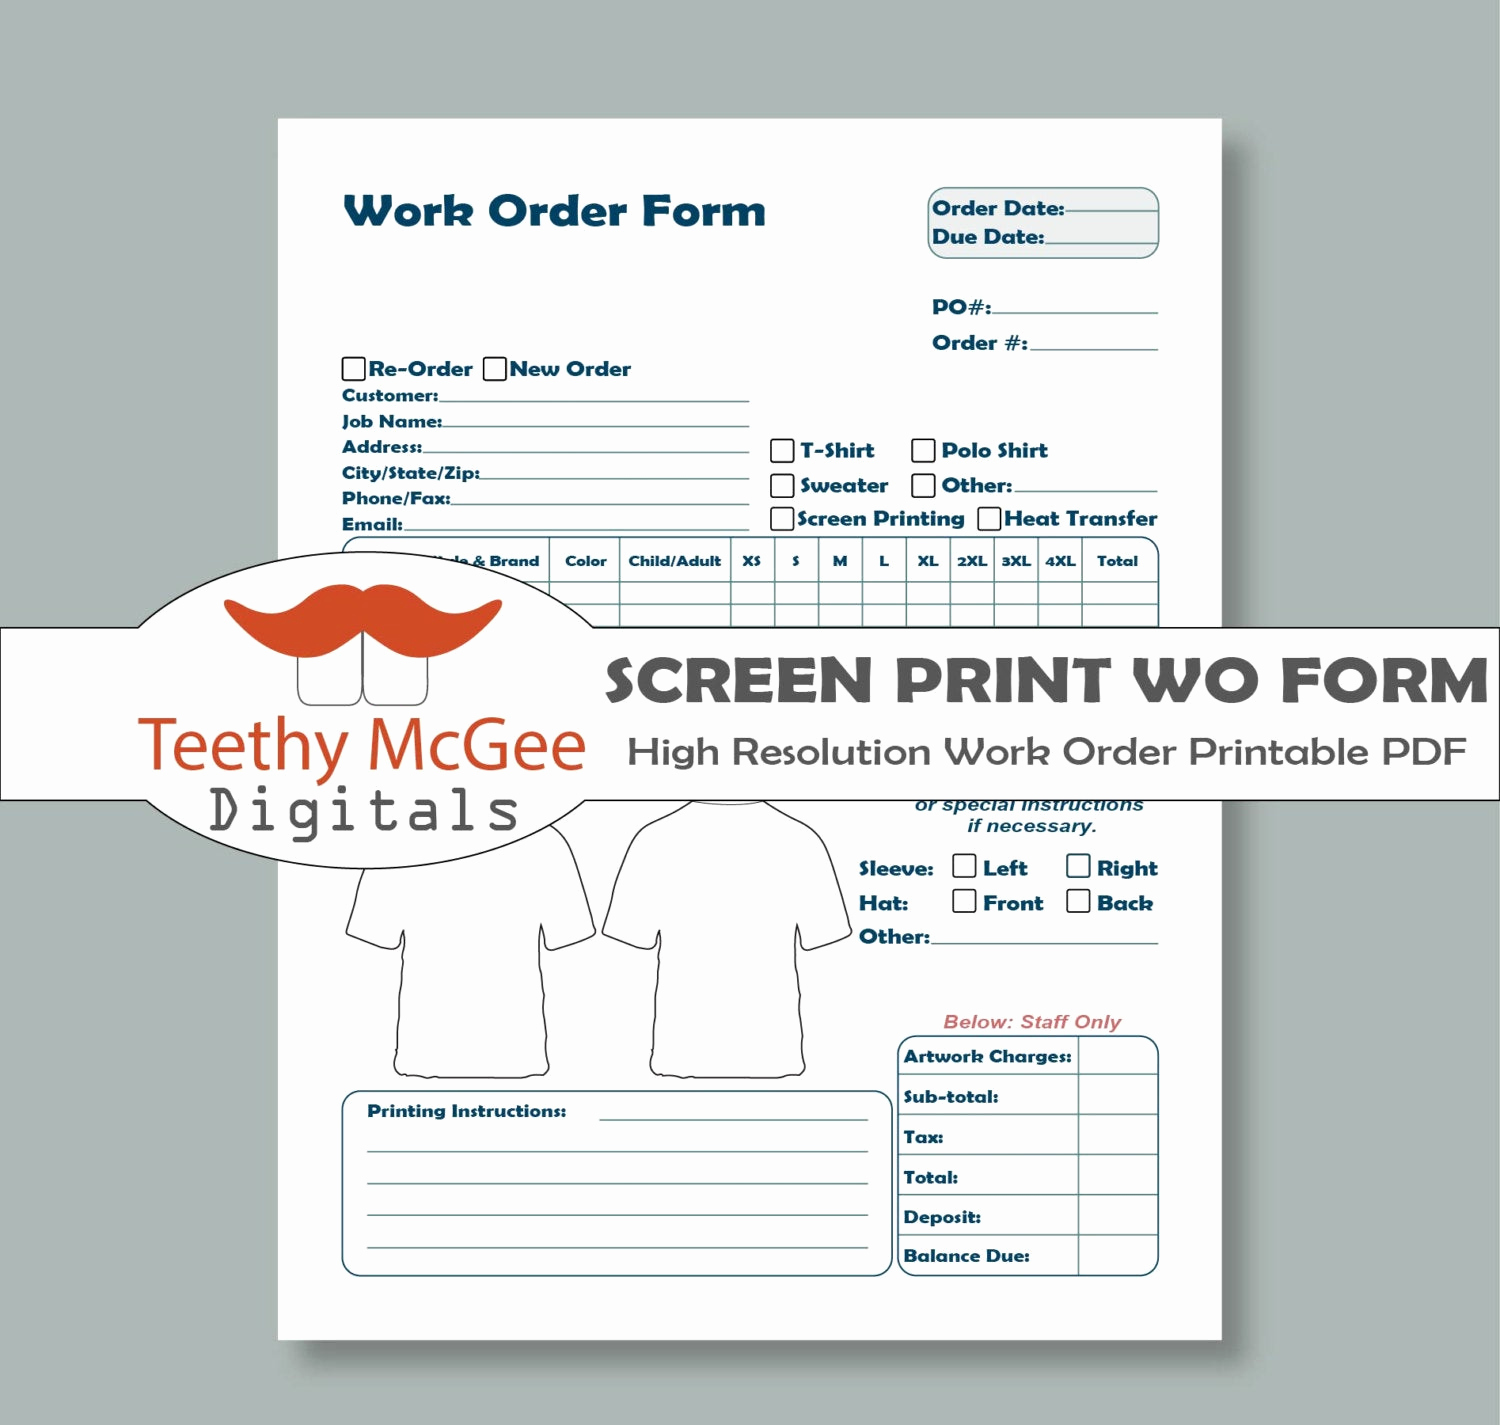 Free Printable Work order Template Beautiful Work order form for Screen Printing Instant Download